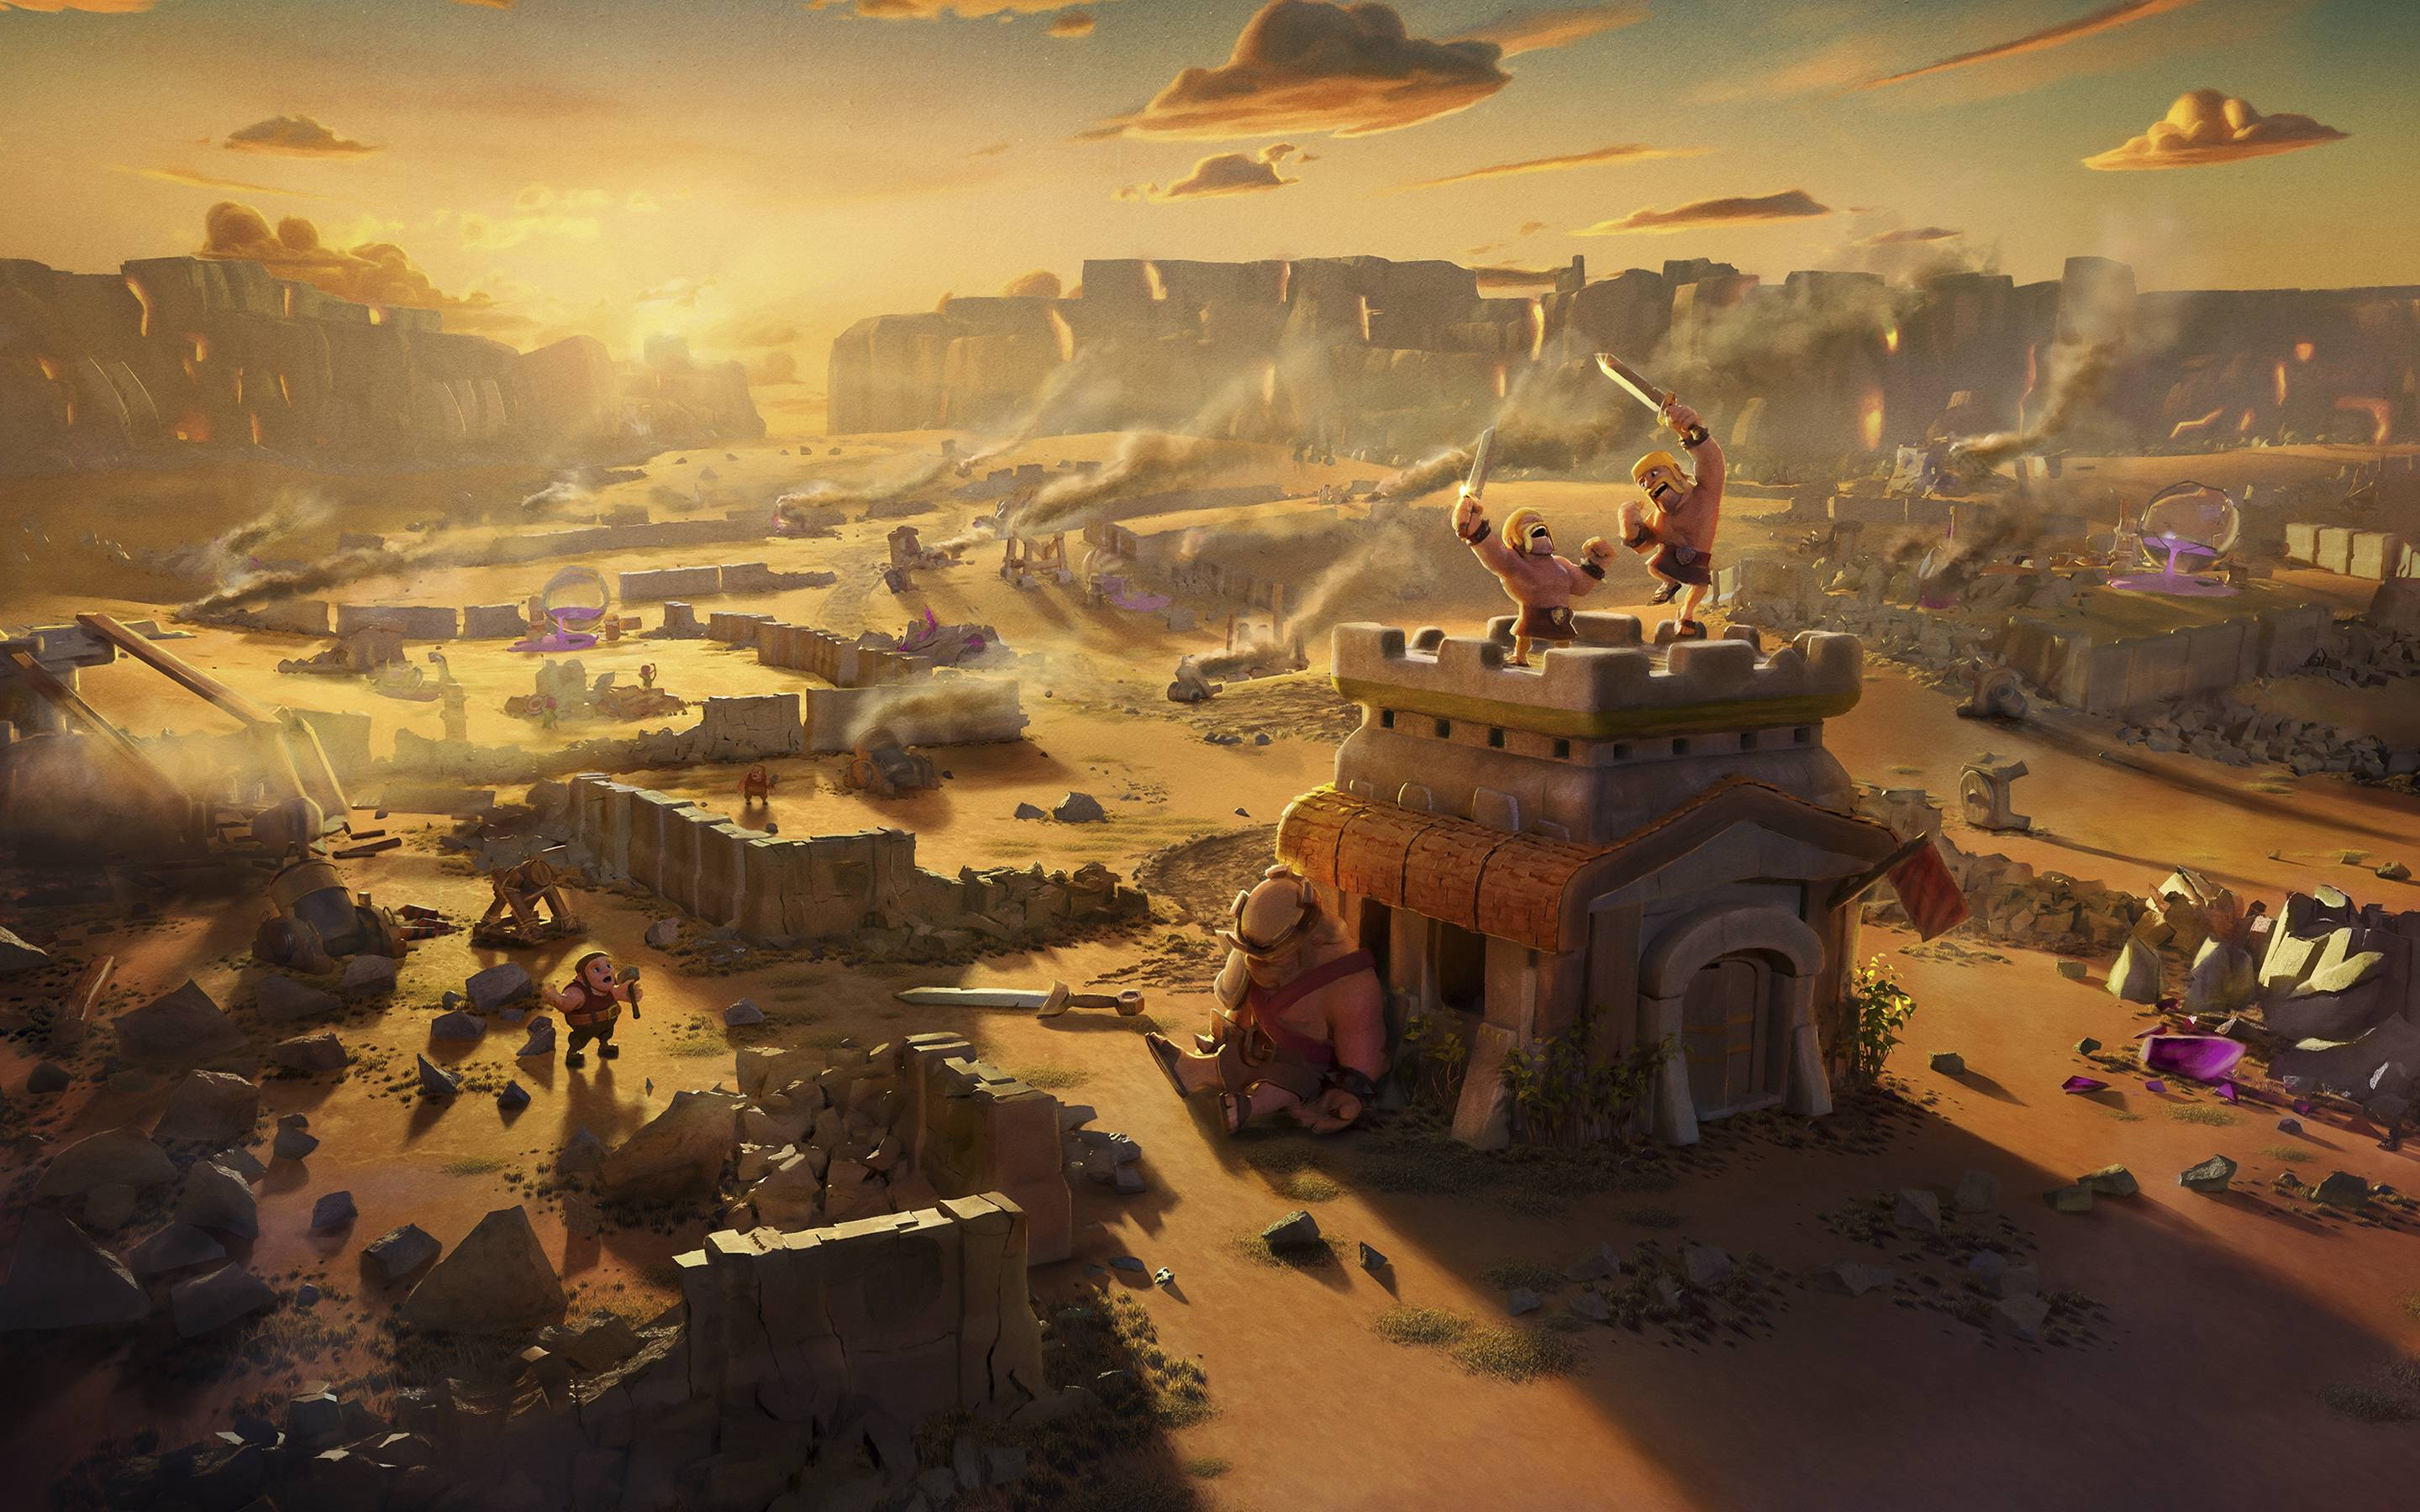 clash of clans video game wide hd wallpaper 73